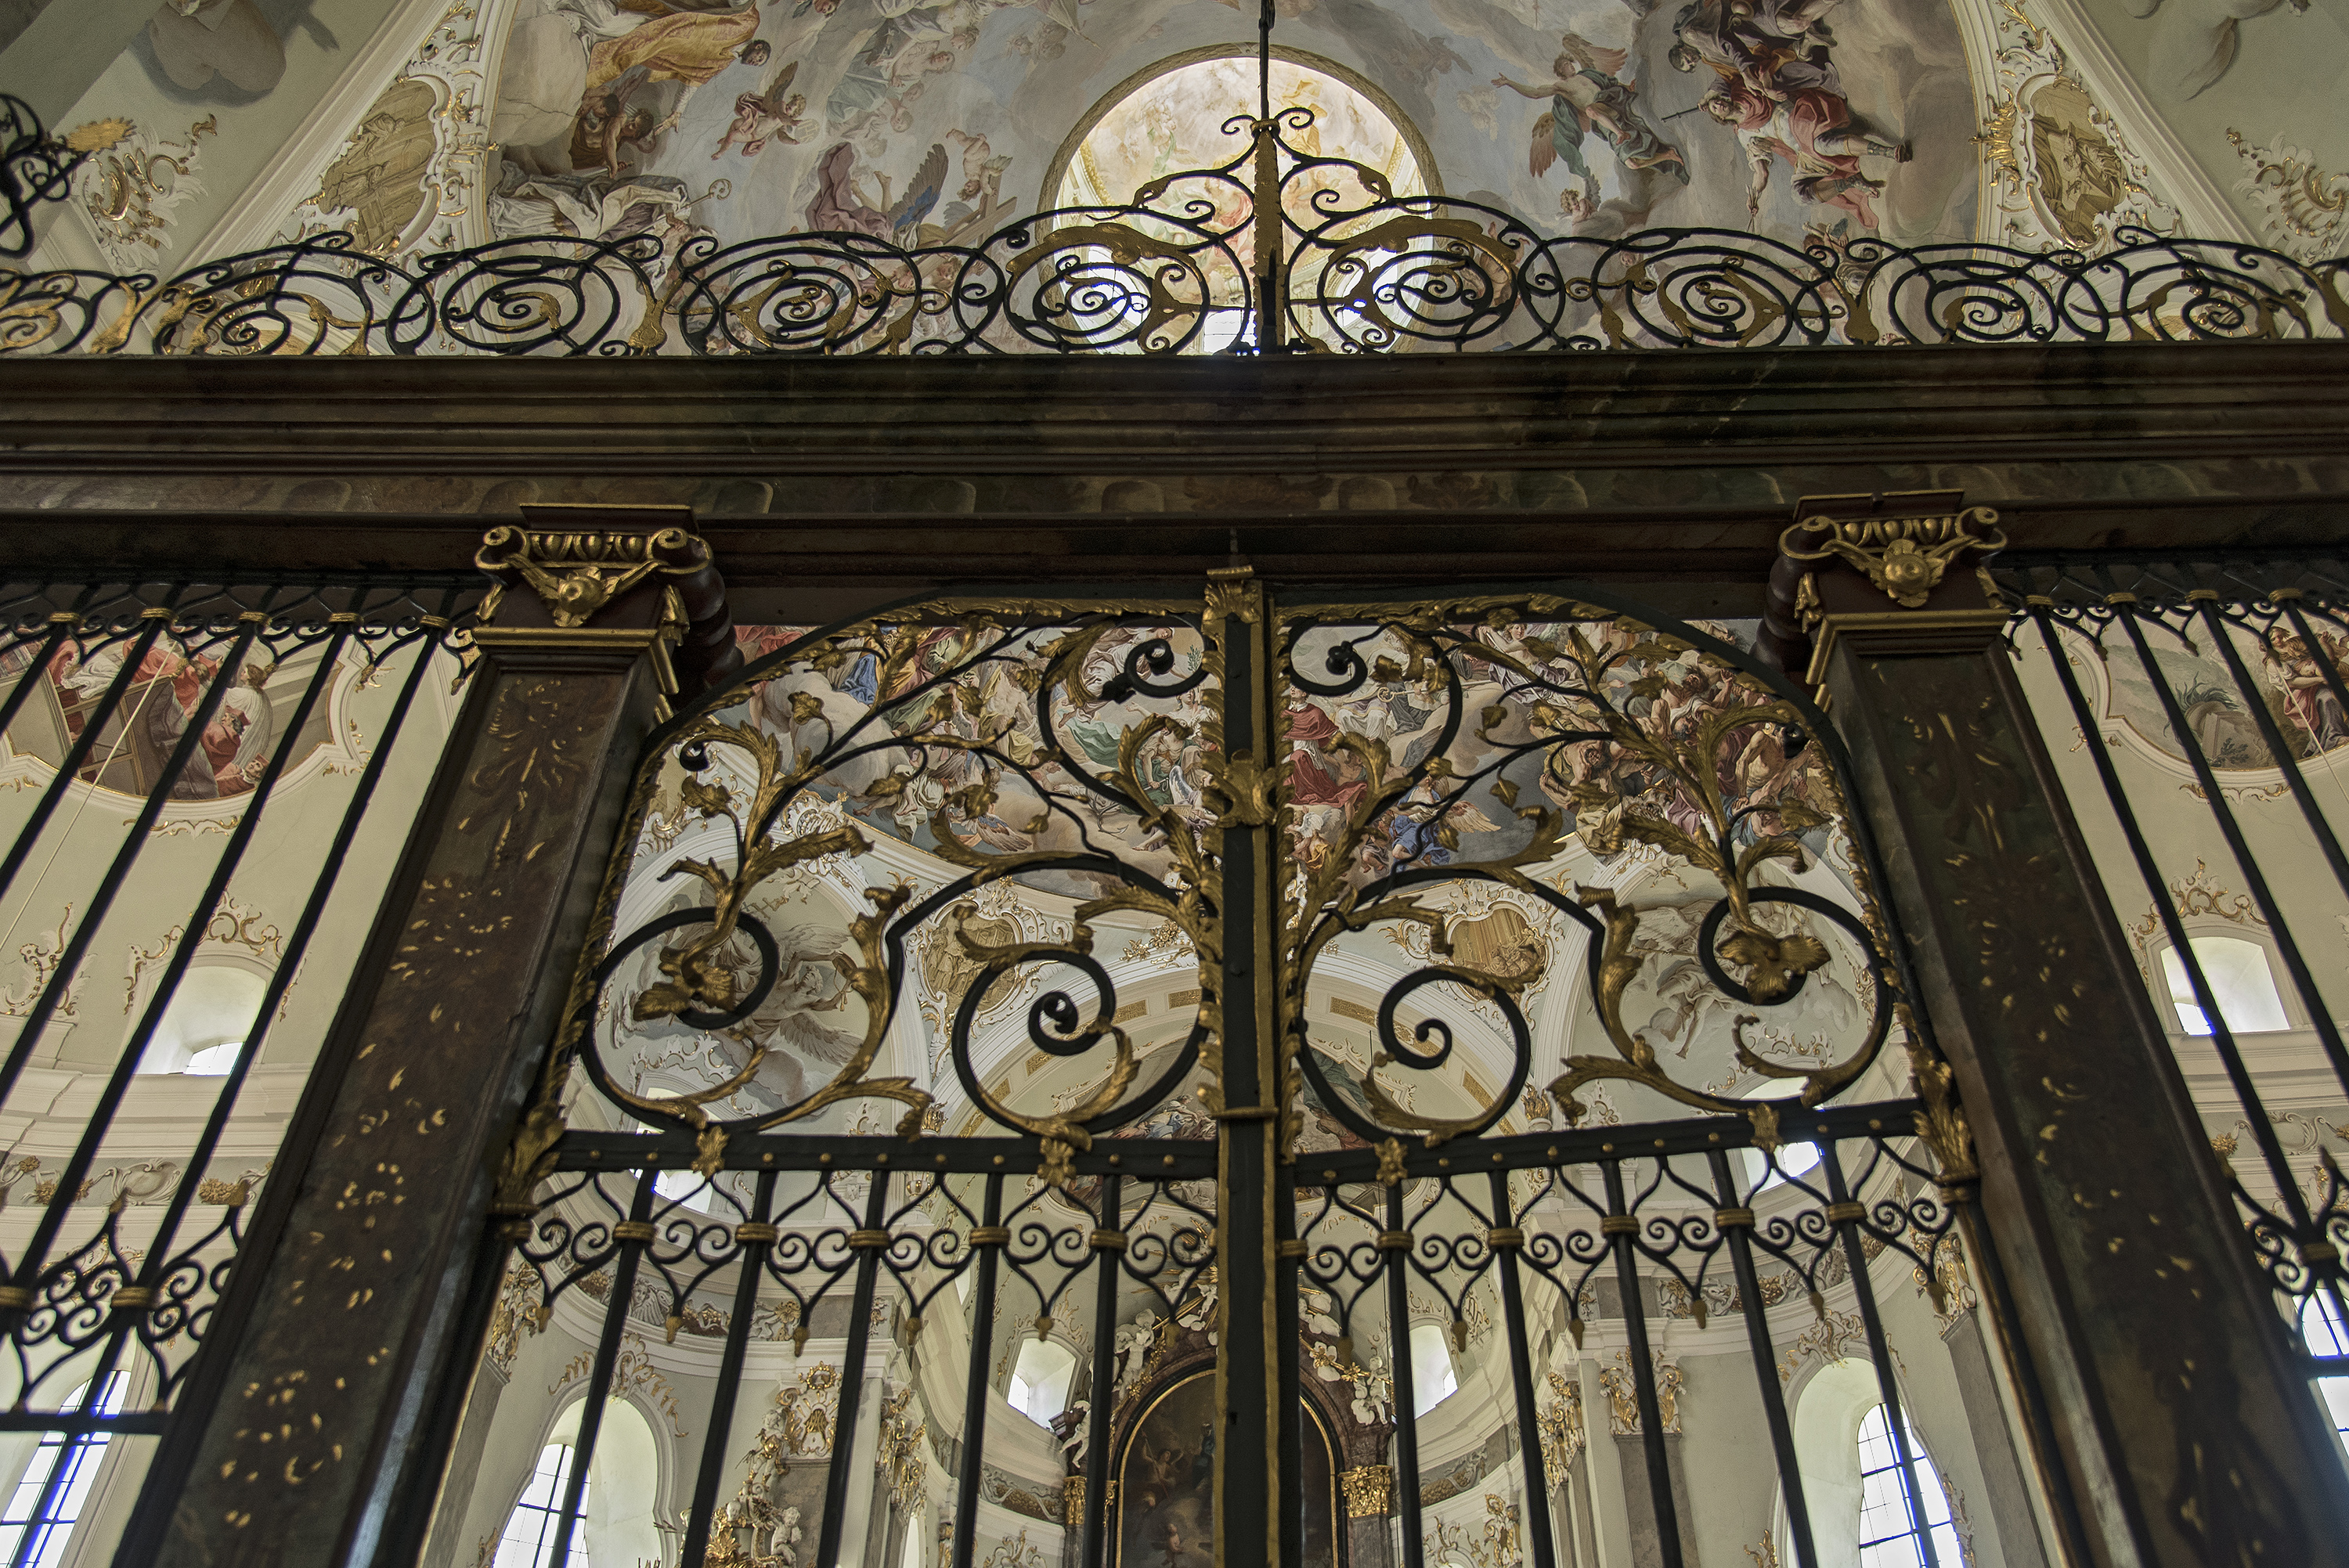 An elaborate wrought iron grille.